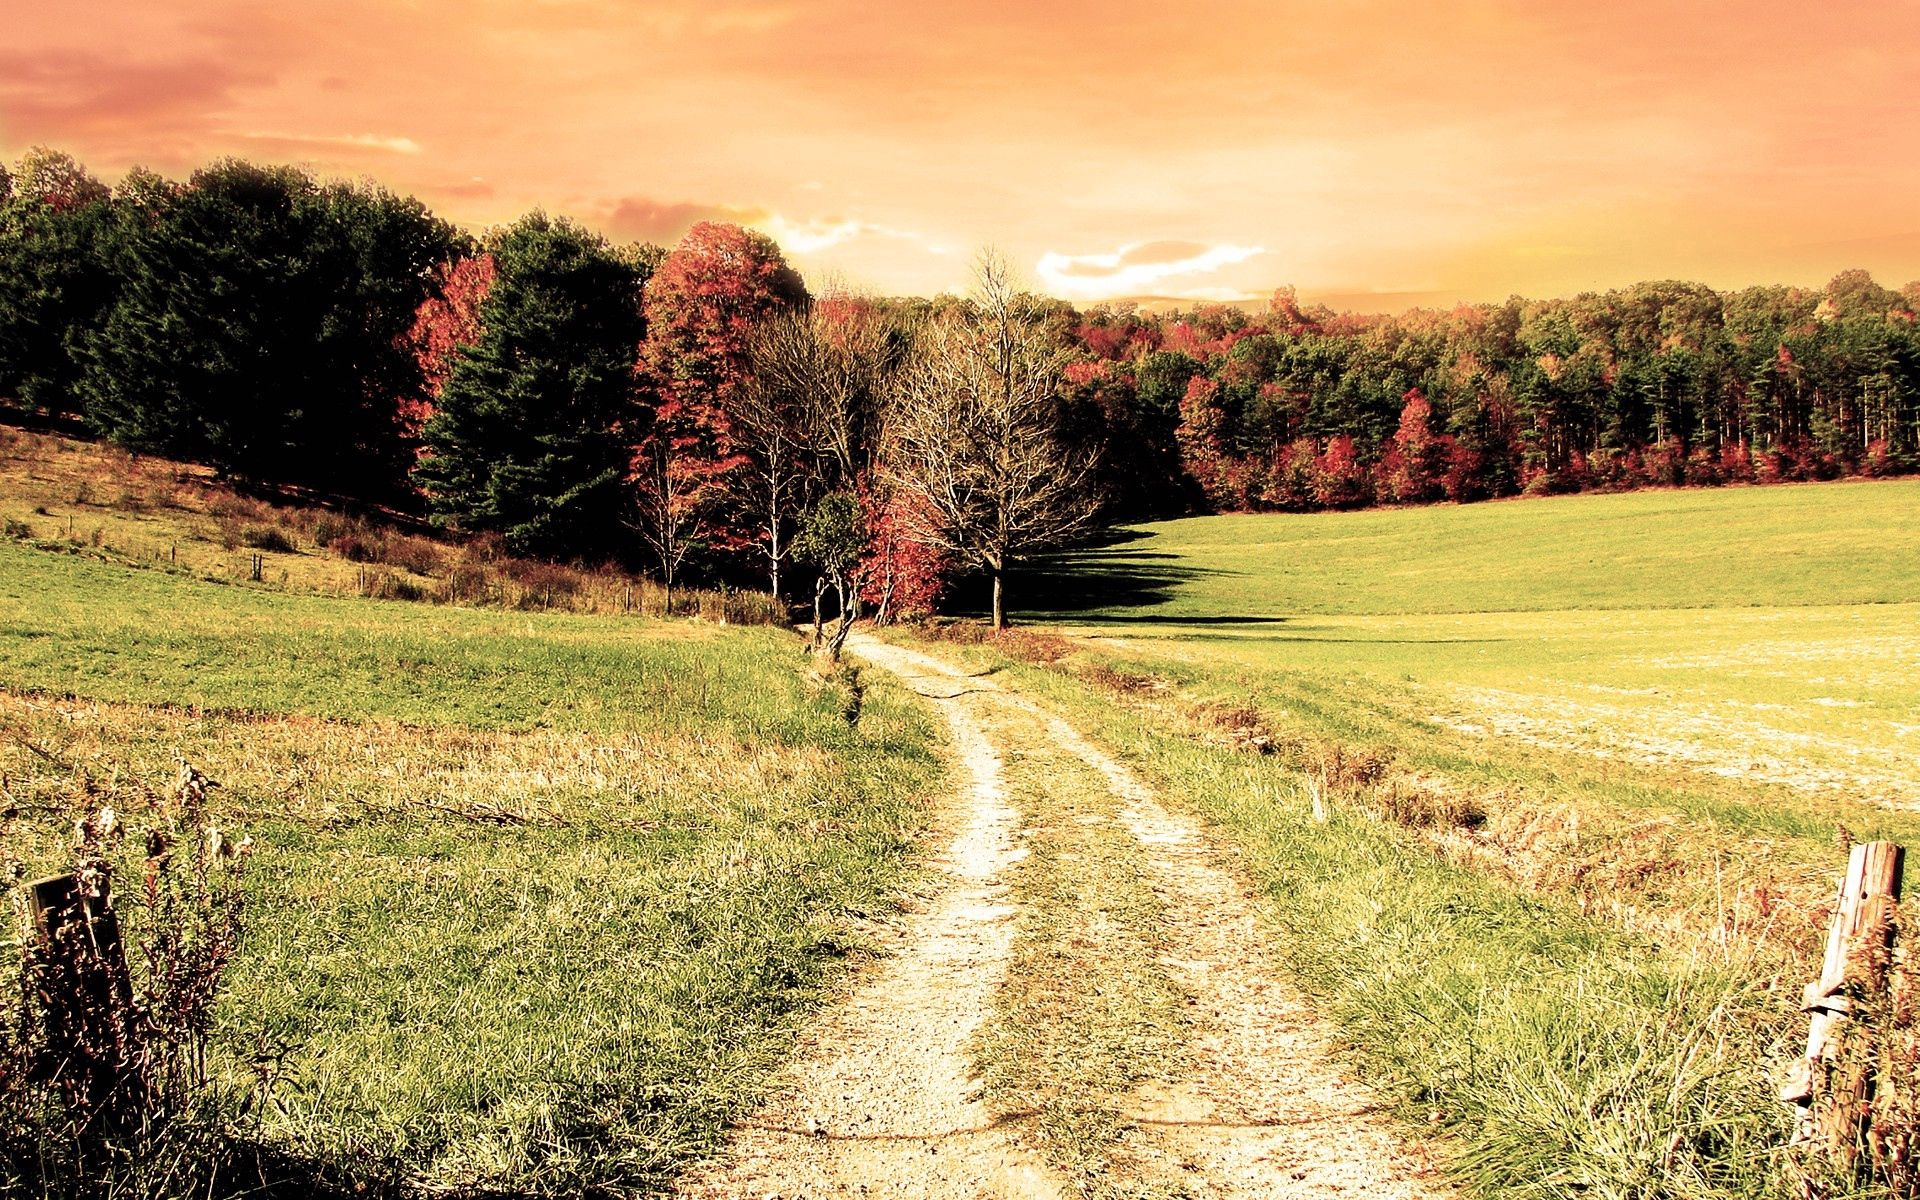 152835 download wallpaper Nature, Road, Forest, Field, Trees, Autumn, Colors, Color screensavers and pictures for free